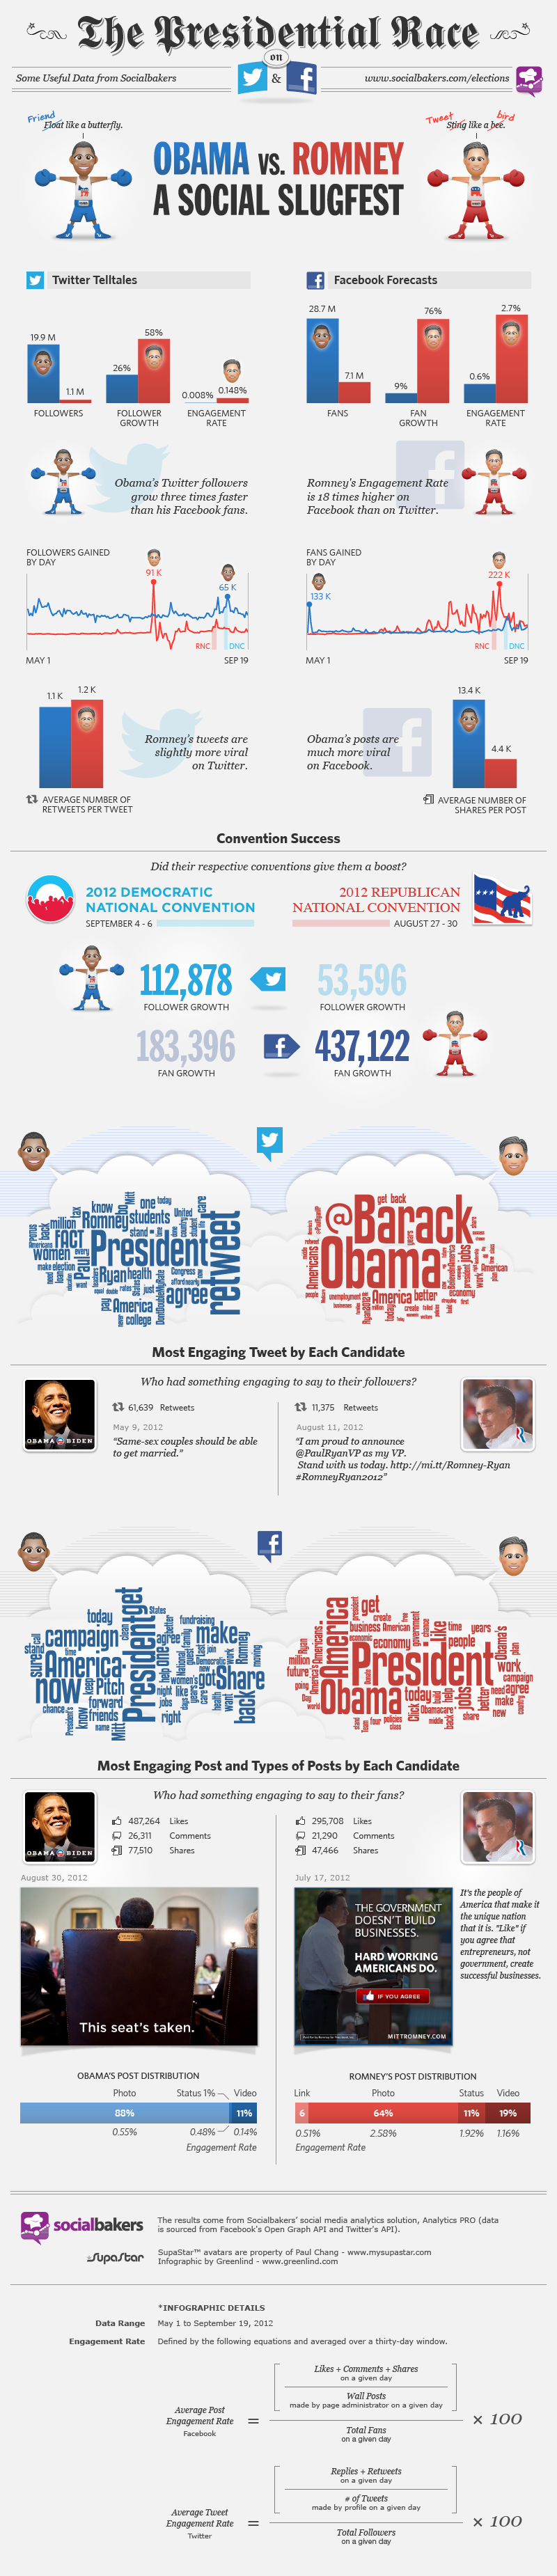 Social Media Marketing Election